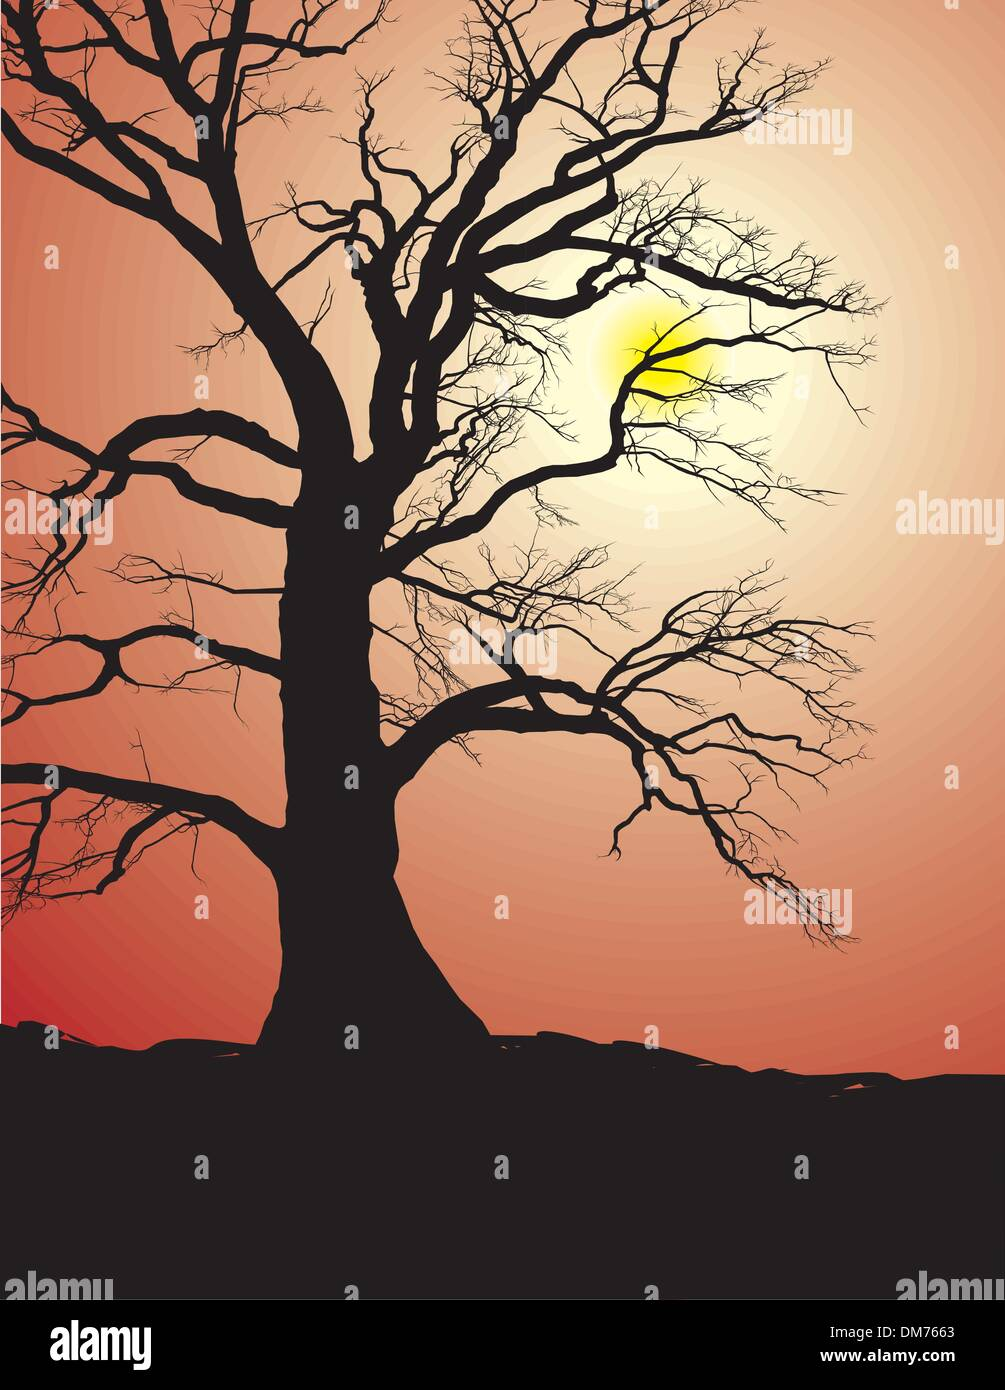 Silhouette Of An Old Tree In Sunset - Stock Vector